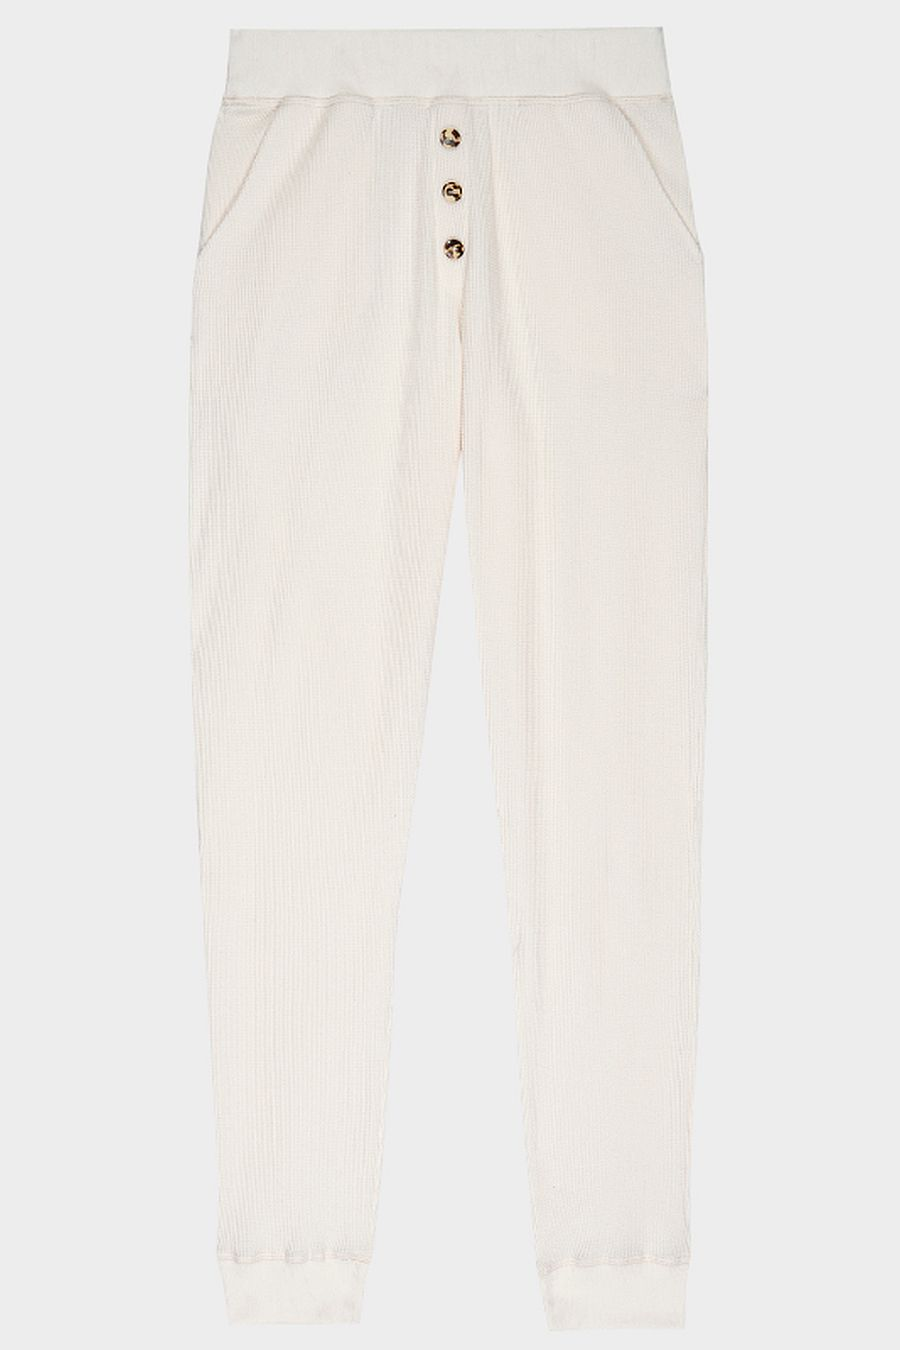 DONNI. Thermal Henley Sweatpant - Creme